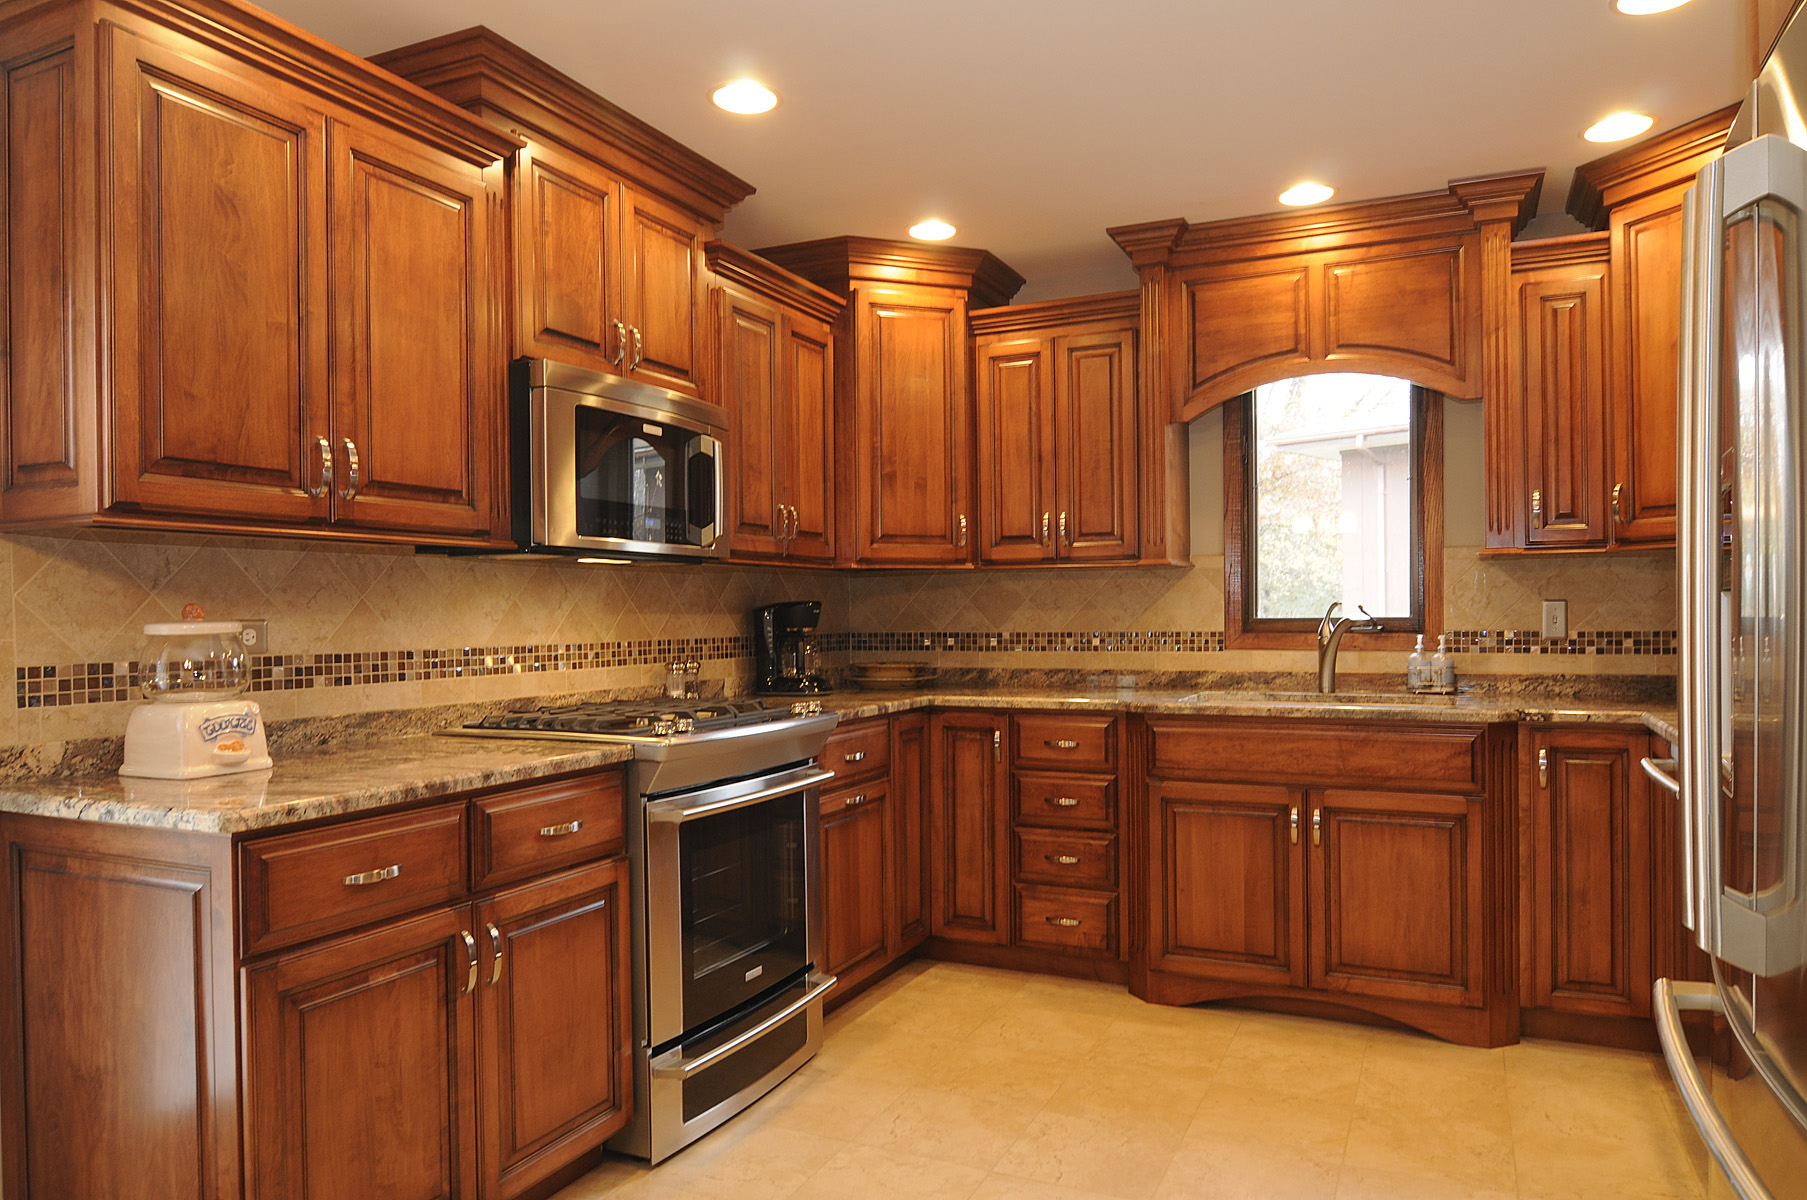 Kitchen cabinets chicago suburbs kitchen cabinets for Kitchen cabinets 60638